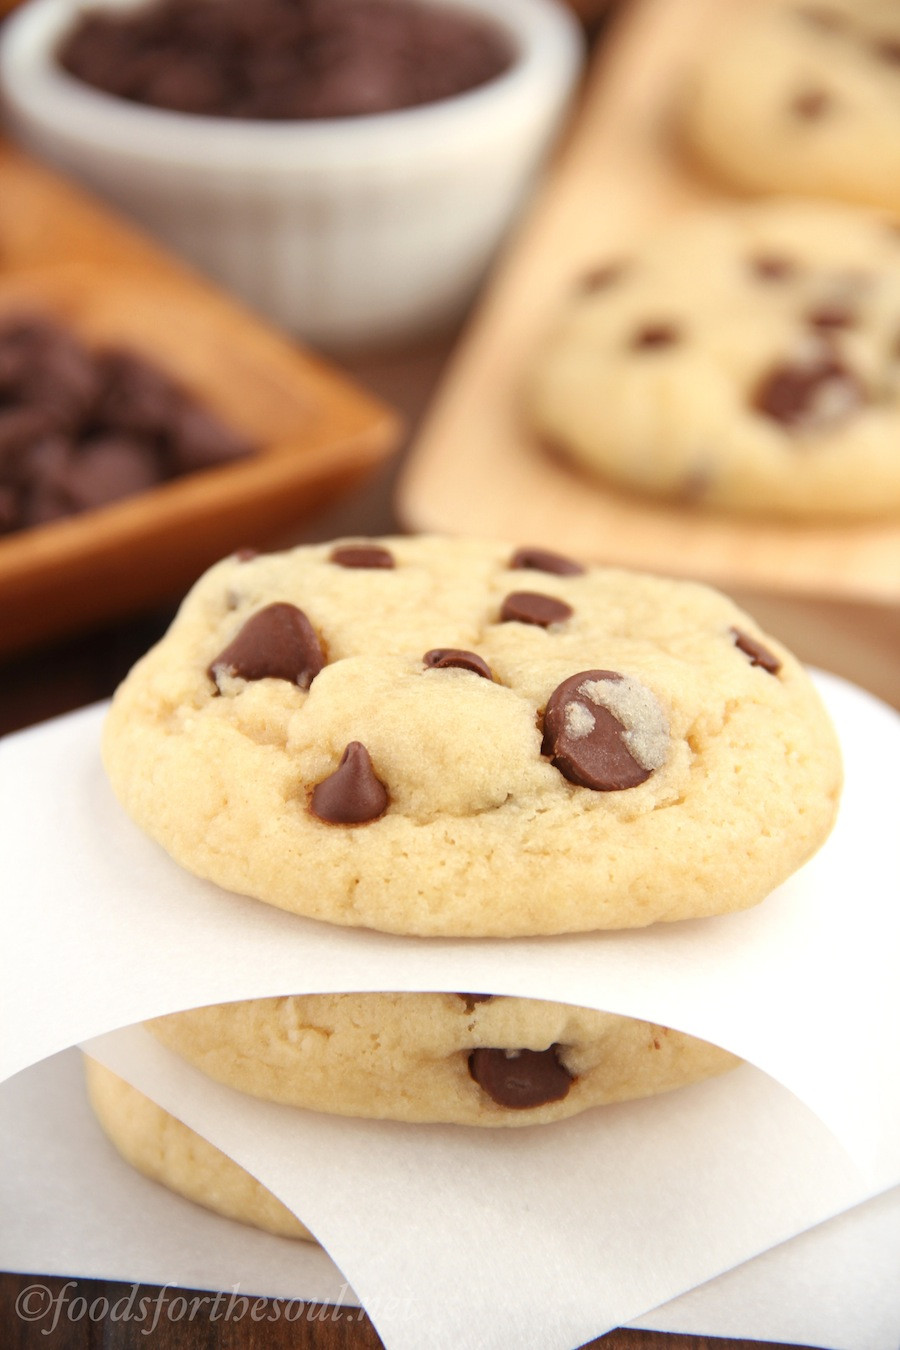 Healthy Cookies Recipe Low Calorie  The Ultimate Healthy Soft & Chewy Chocolate Chip Cookies